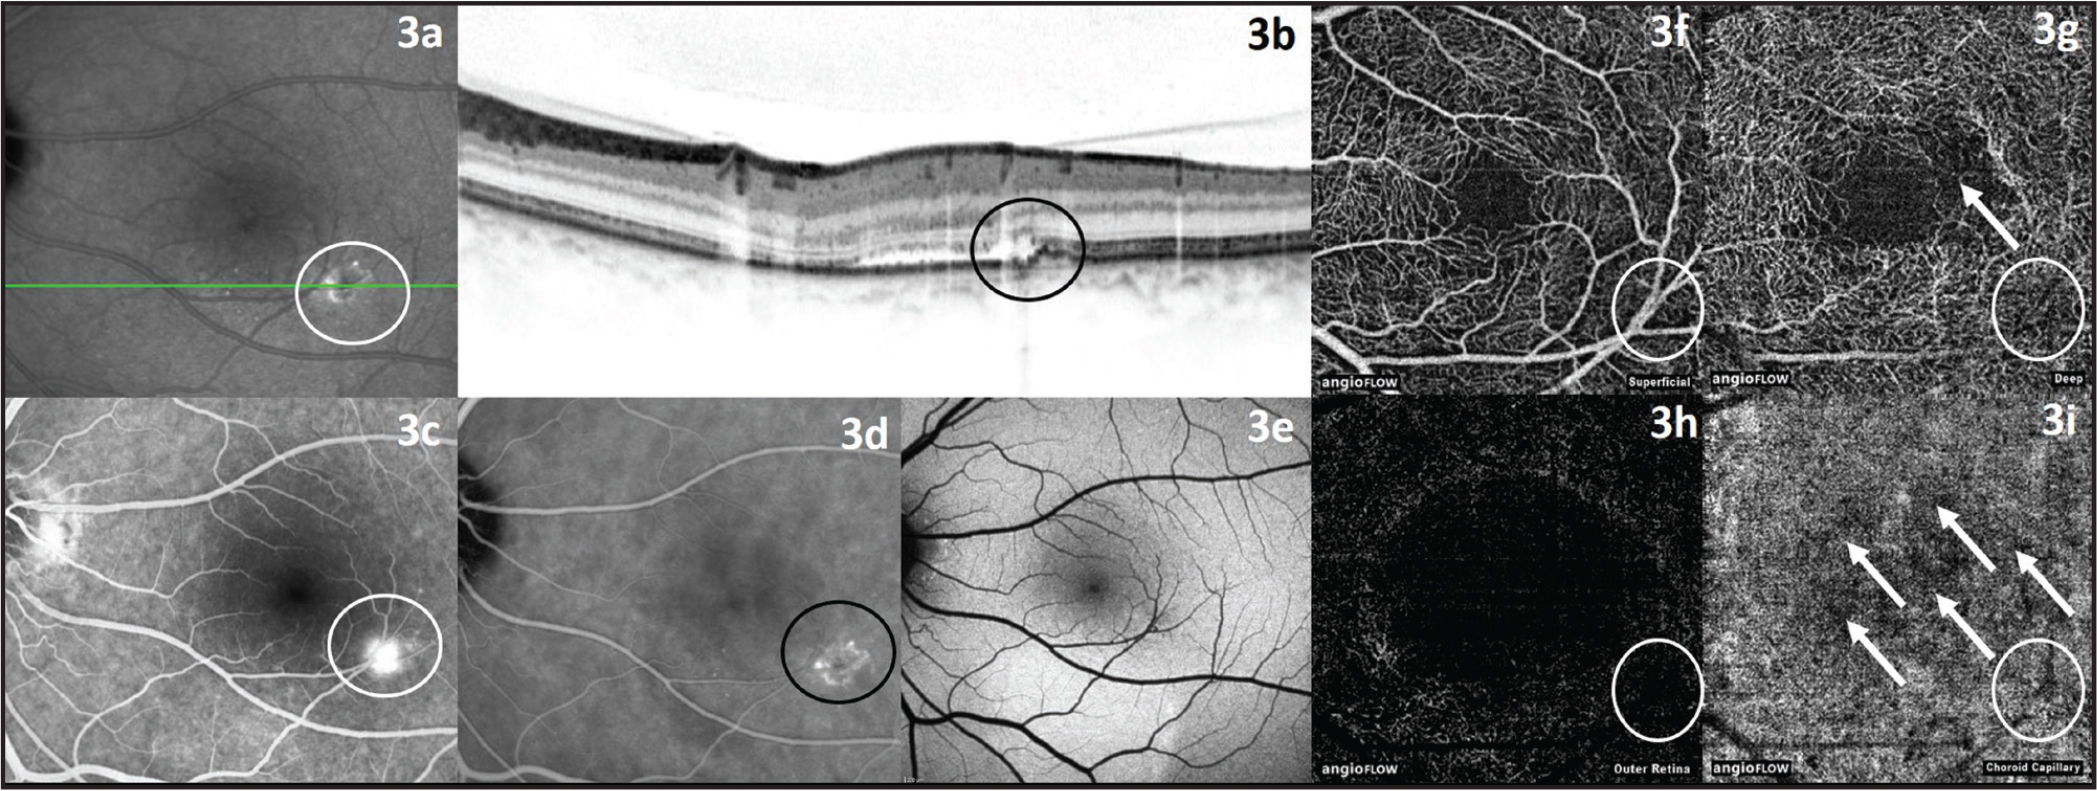 Left eye of a 47-year-old male patient with acute central serous chorioretinopathy. (A, B) Infrared and optical coherence tomography (OCT) image showing retinal detachment and detachment of retinal pigment epithelium (circle). (C) Fluorescein angiography image with leakage point (white circle). (D) Indocyanine green angiography image with leakage point (black circle). (E) Fundus autofluorescence image. (F) OCT angiography (OCTA) image of superficial retinal vessels. (G) OCTA image of deep retinal vessels with central rarefication of vessels and discernable area with detached retina (white arrow). (H) OCTA image of outer retina. (I) OCTA image of choroid capillaries with abnormal flow pattern (white arrows) leakage point cannot be seen in 3F–3I (white circle).